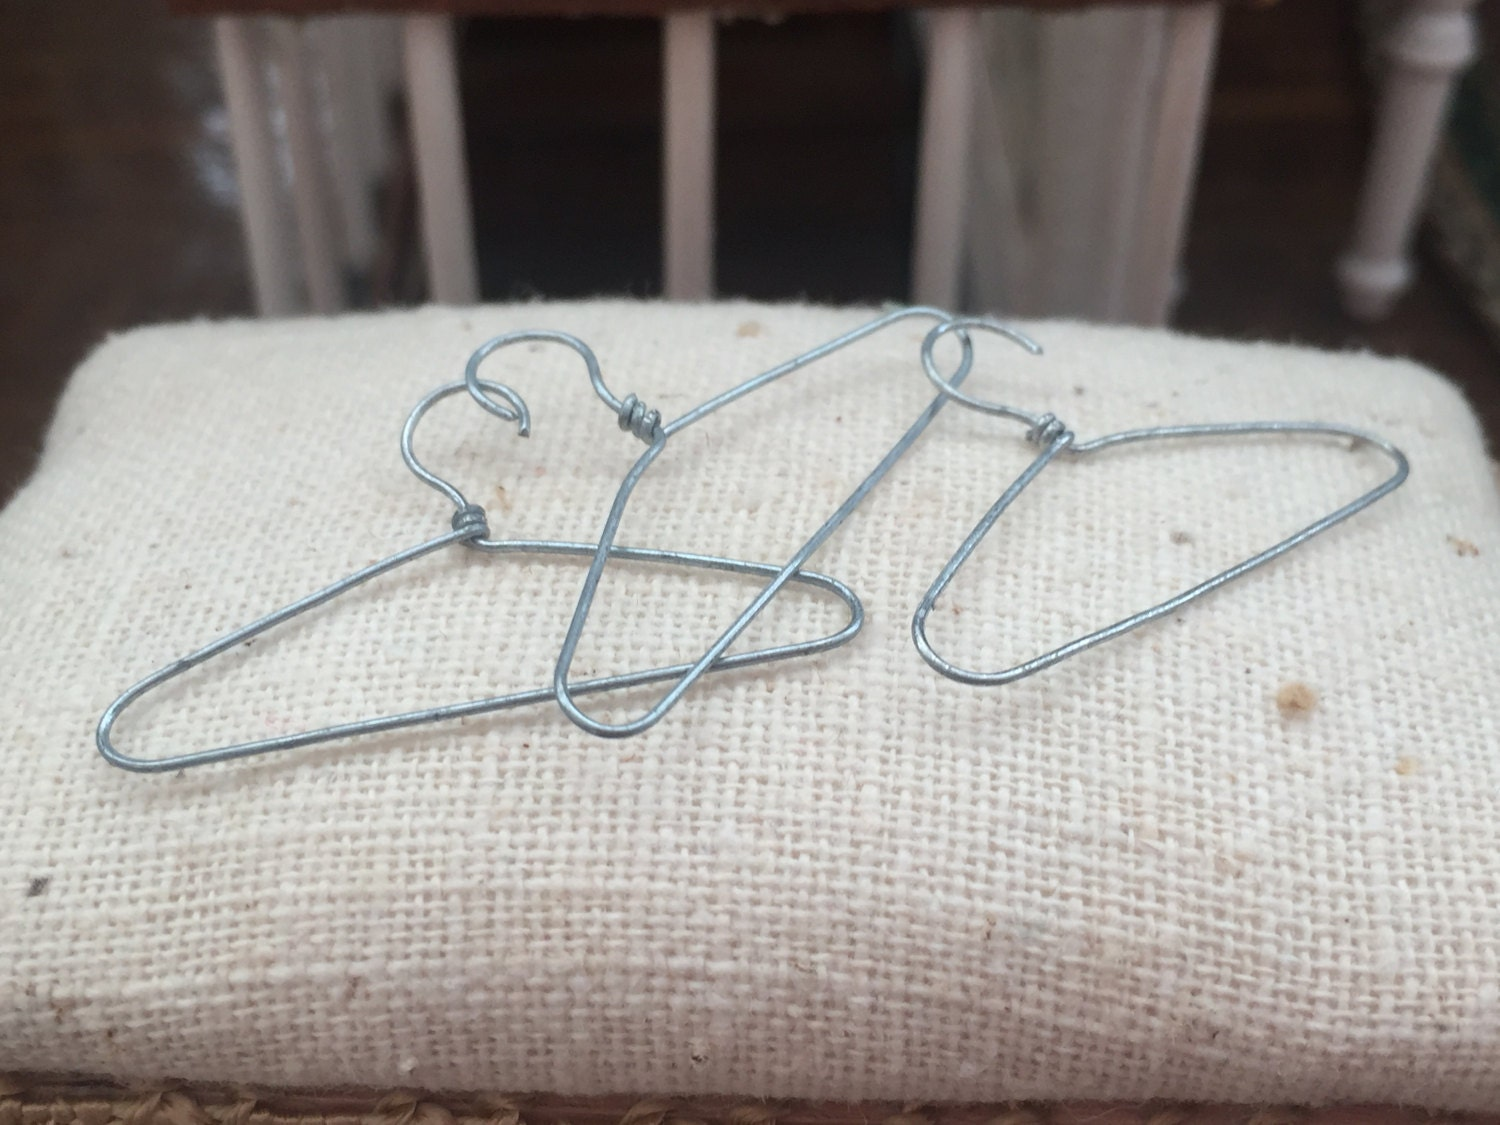 Miniature Wire Hangers Dollhouse Miniature 1:12 Scale